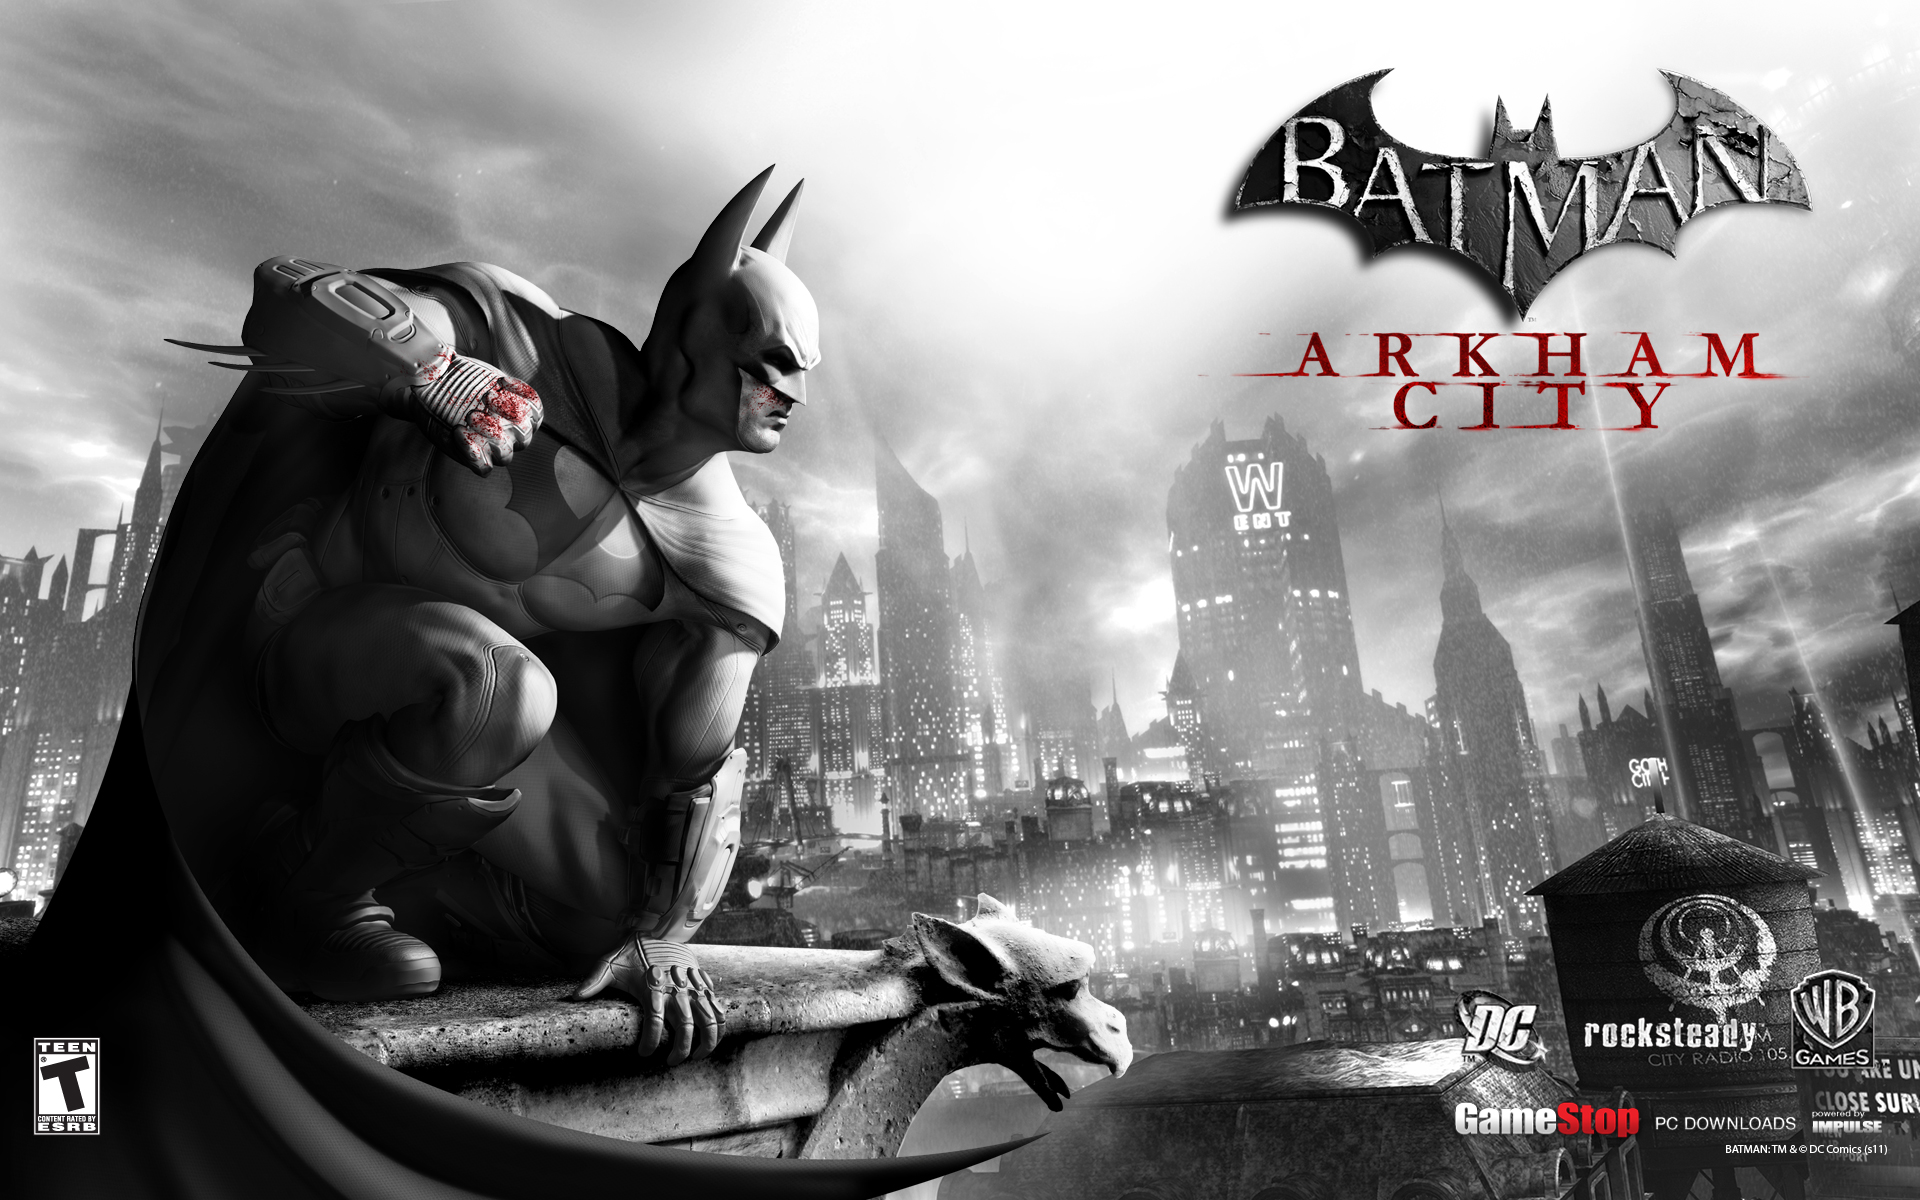 city arkham community wallpapers exclusive batman 1920x1200